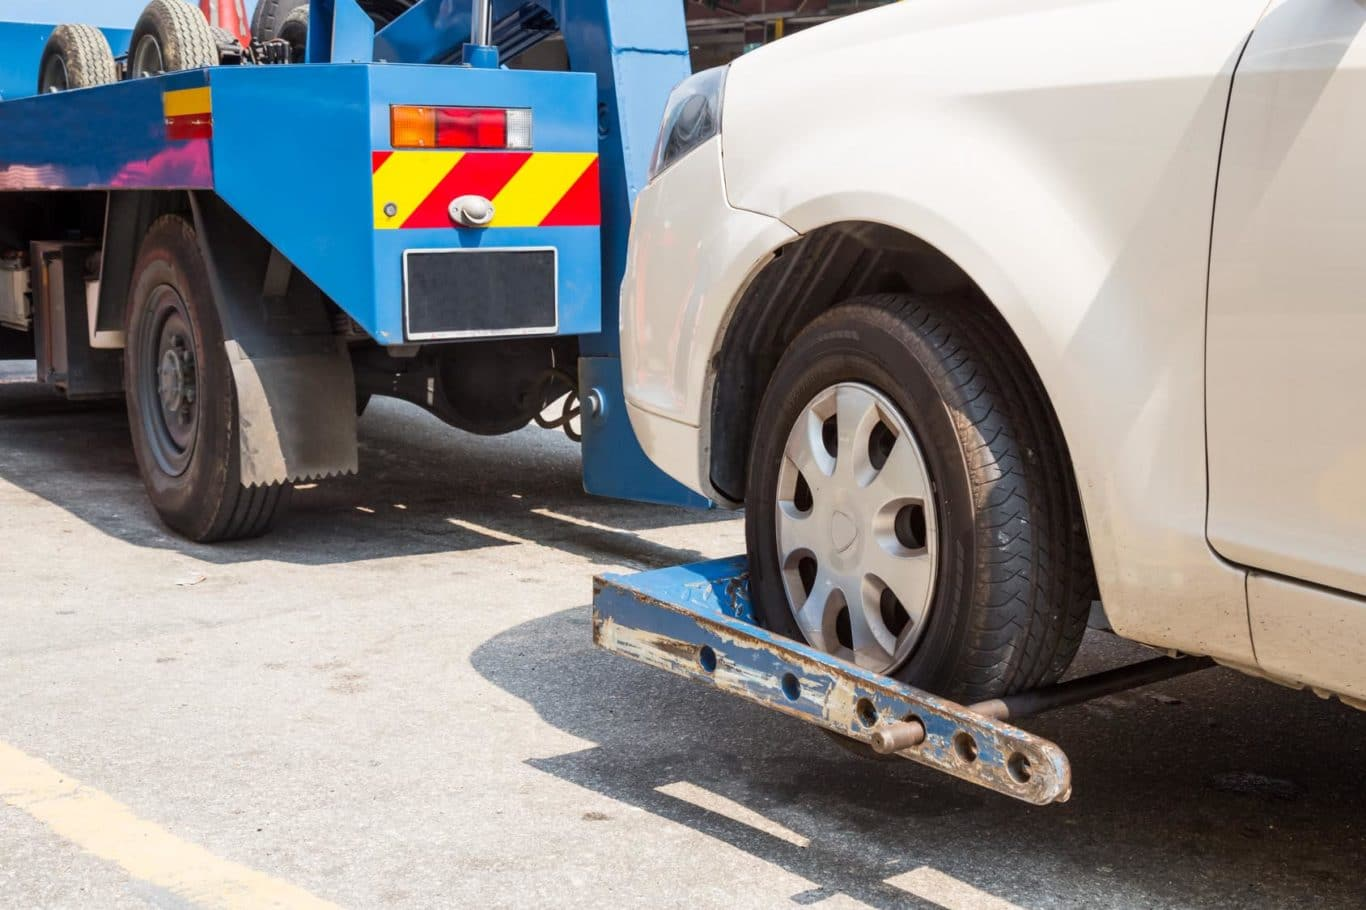 Dunleer expert Car Towing services